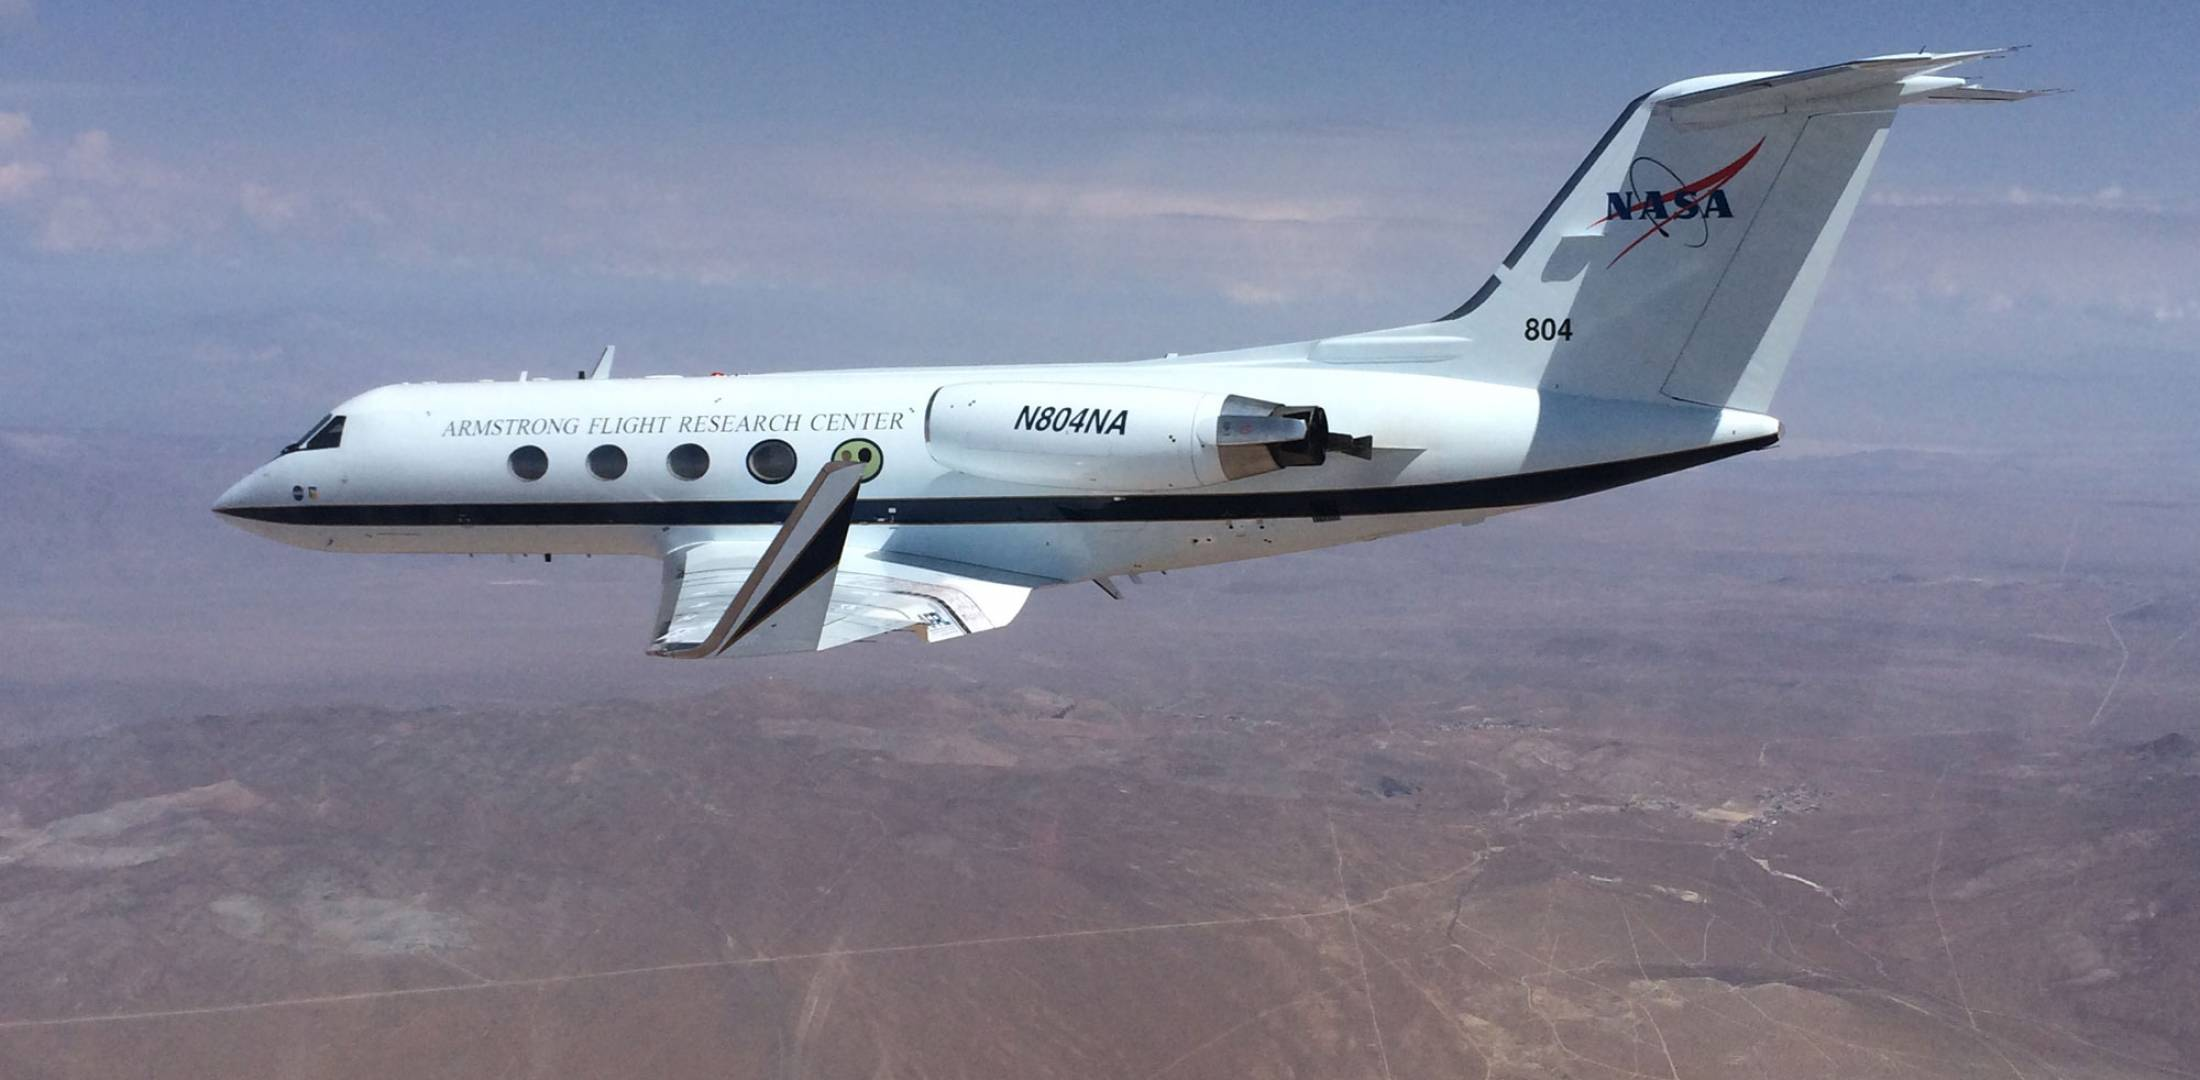 GIII testbed with wing morphing technology